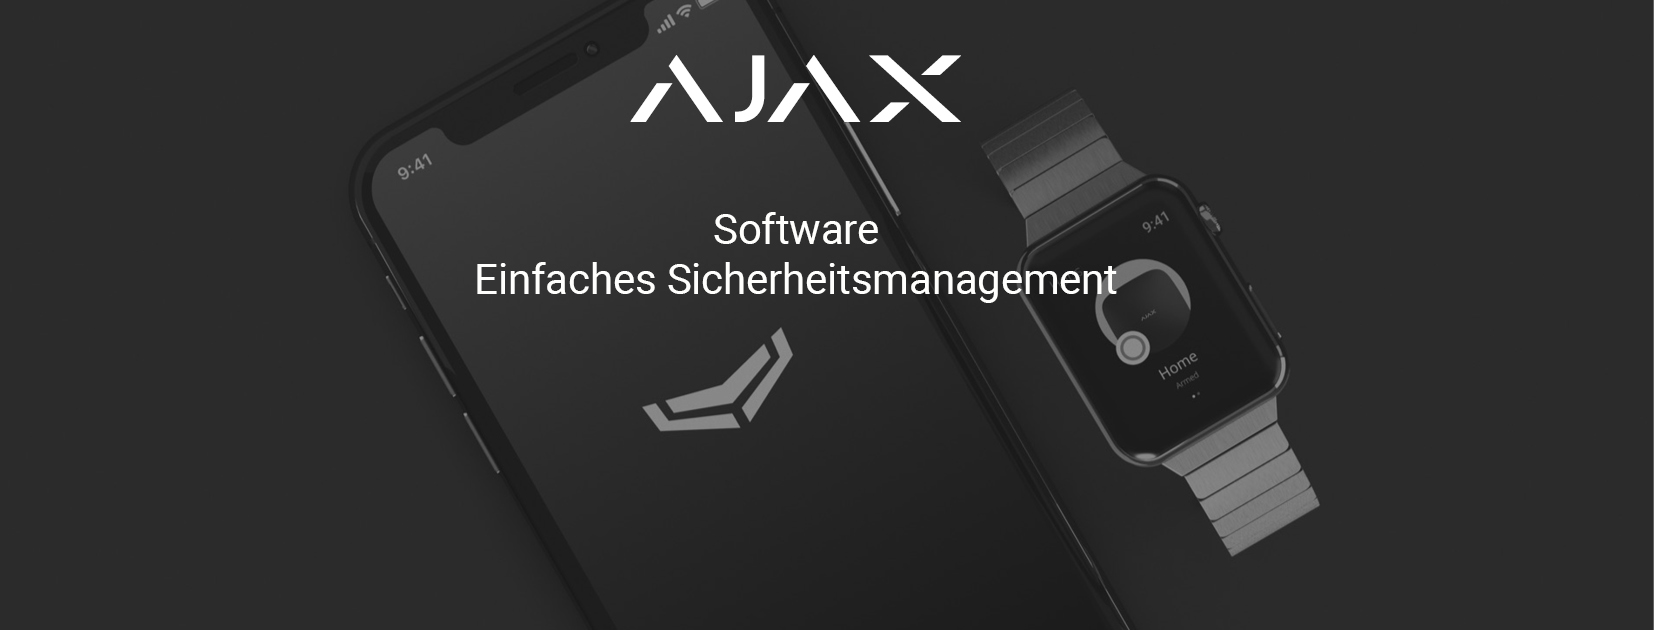 Ajax_alarmanlage-software